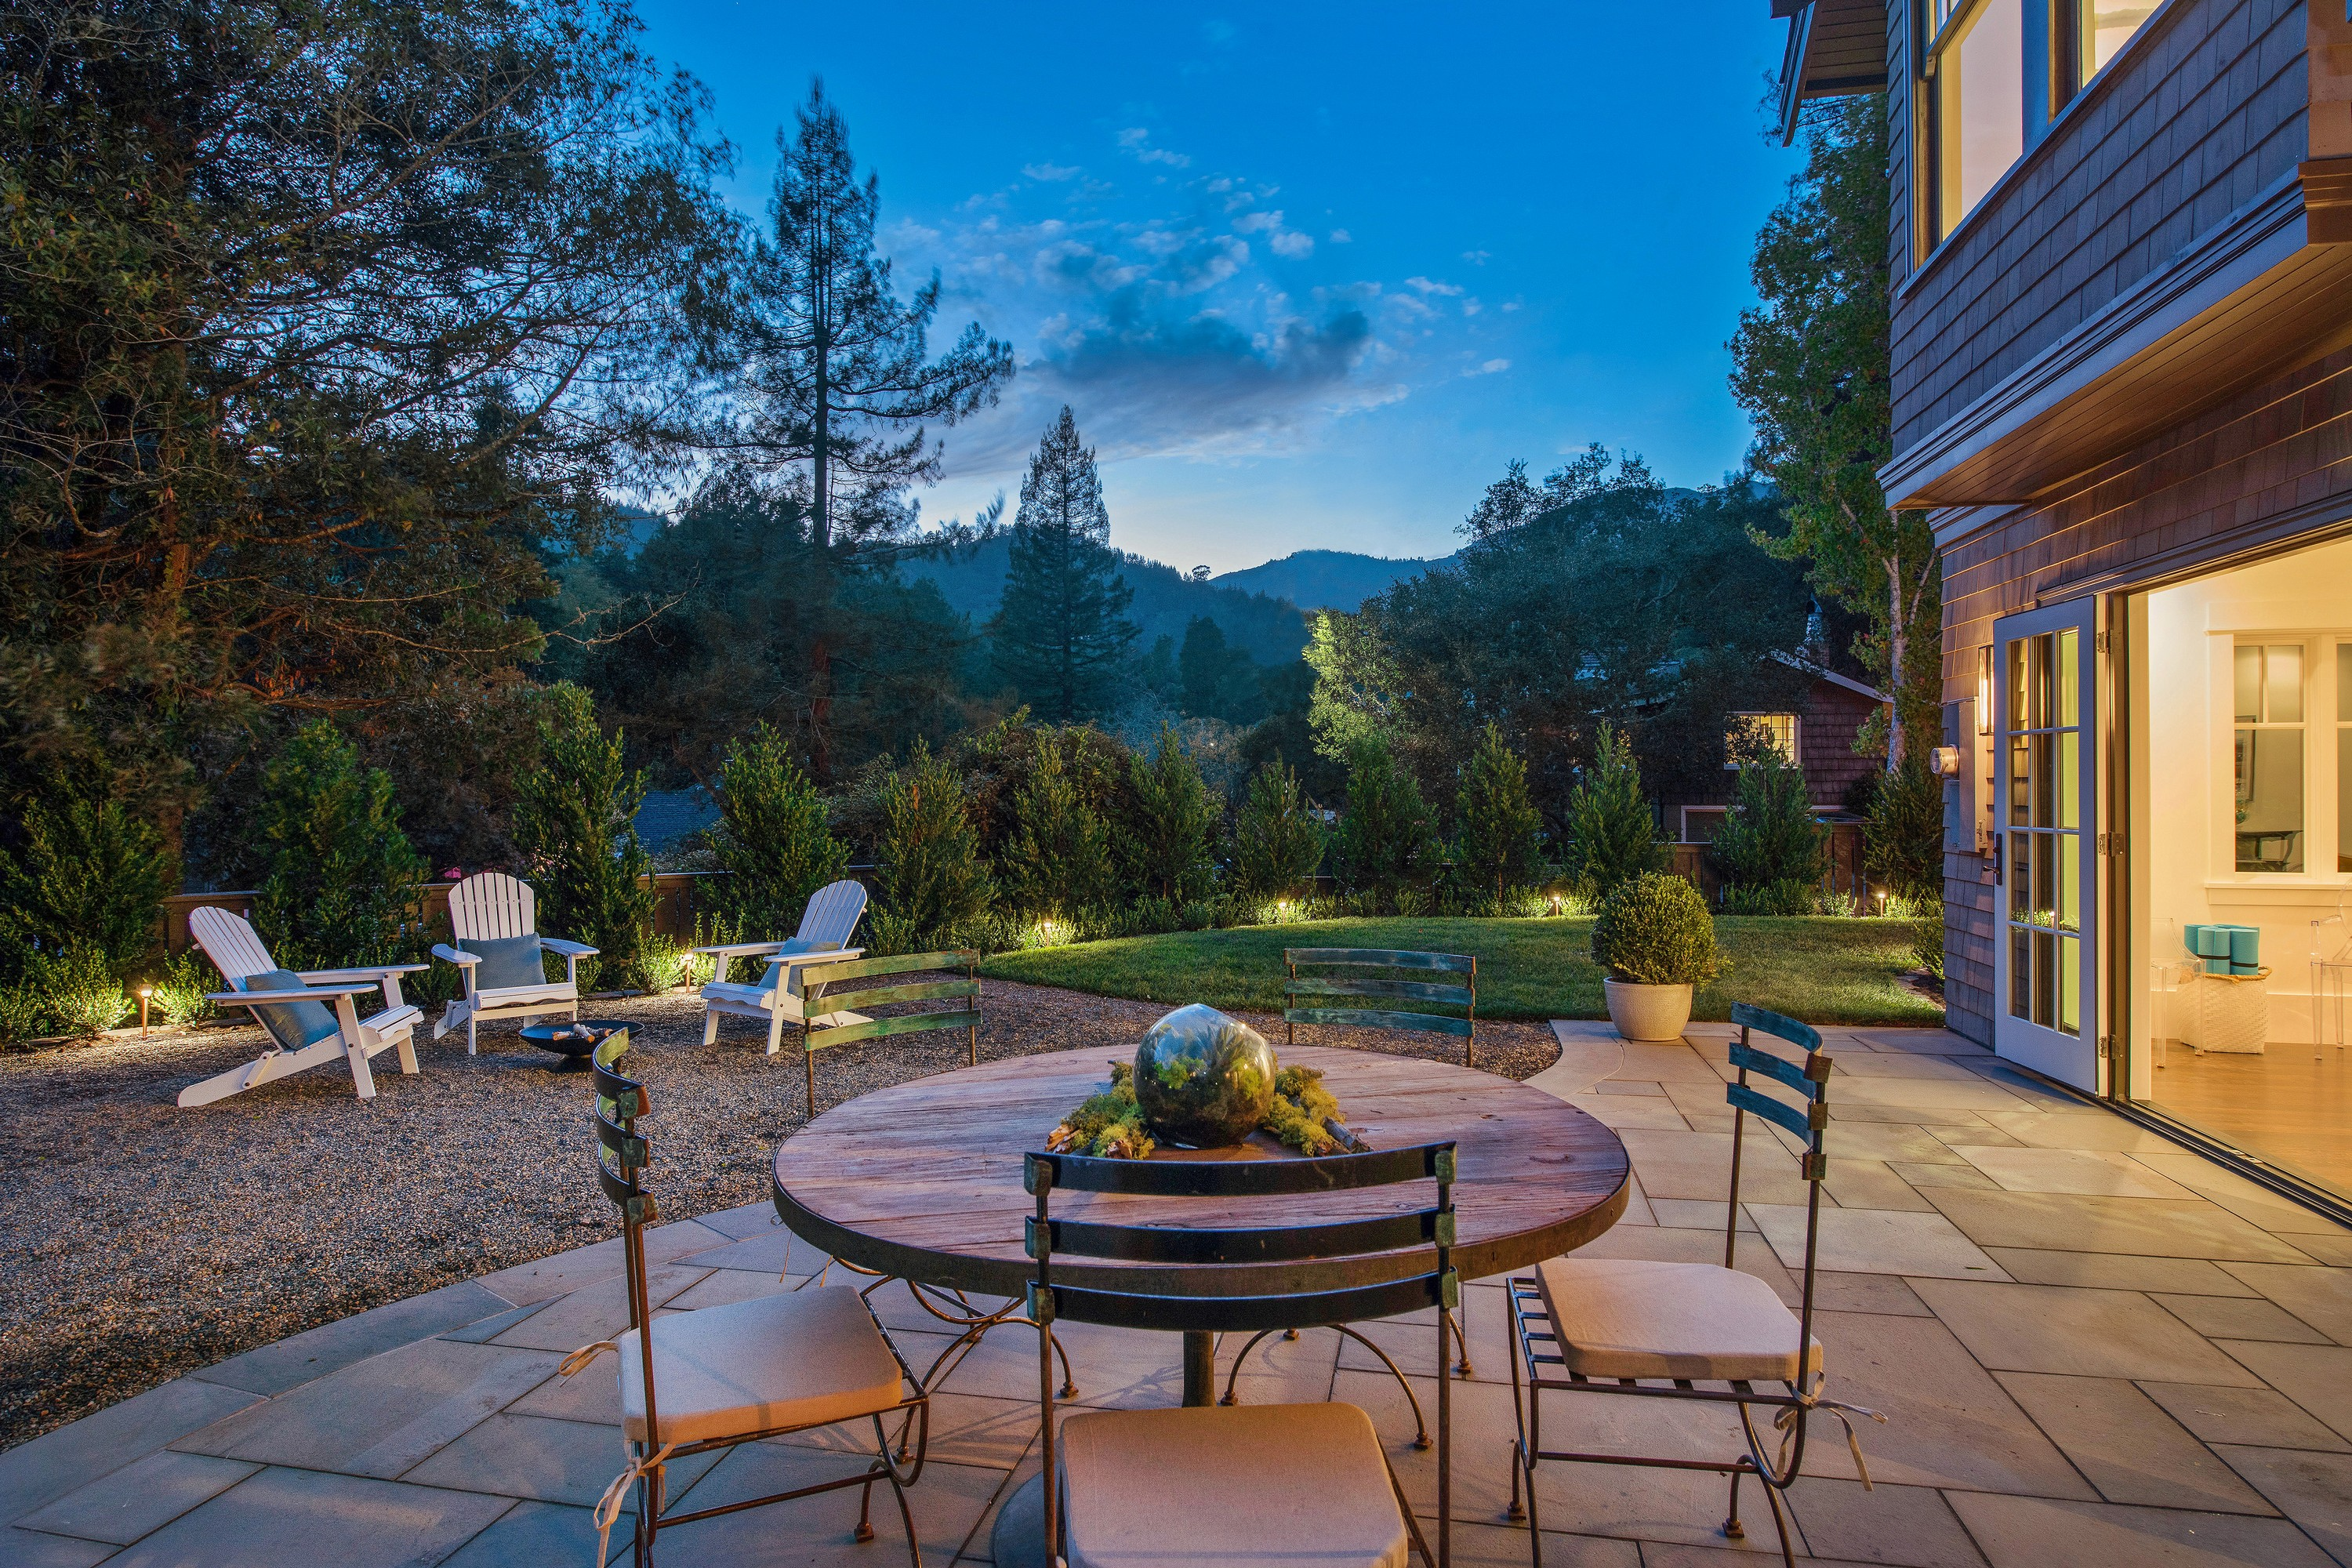 Single Family Home for Sale at Rare Rebuild in Heart of Mill Valley 400 Throckmorton Avenue Mill Valley, California 94941 United States